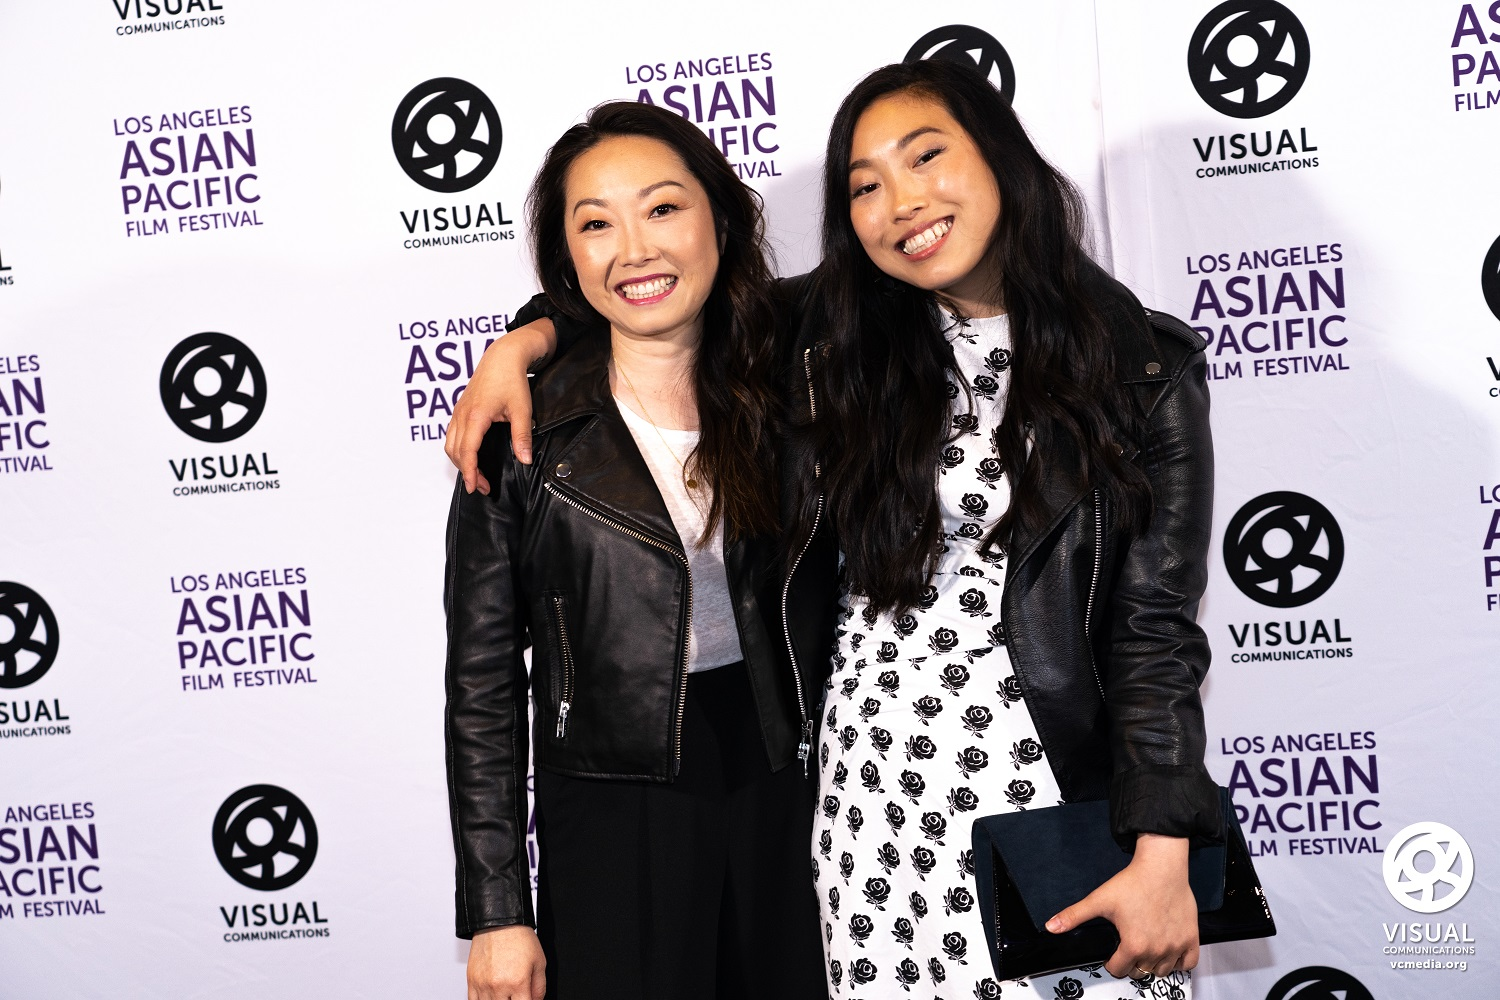 Source:  Los Angeles Asian Pacific Film Festival